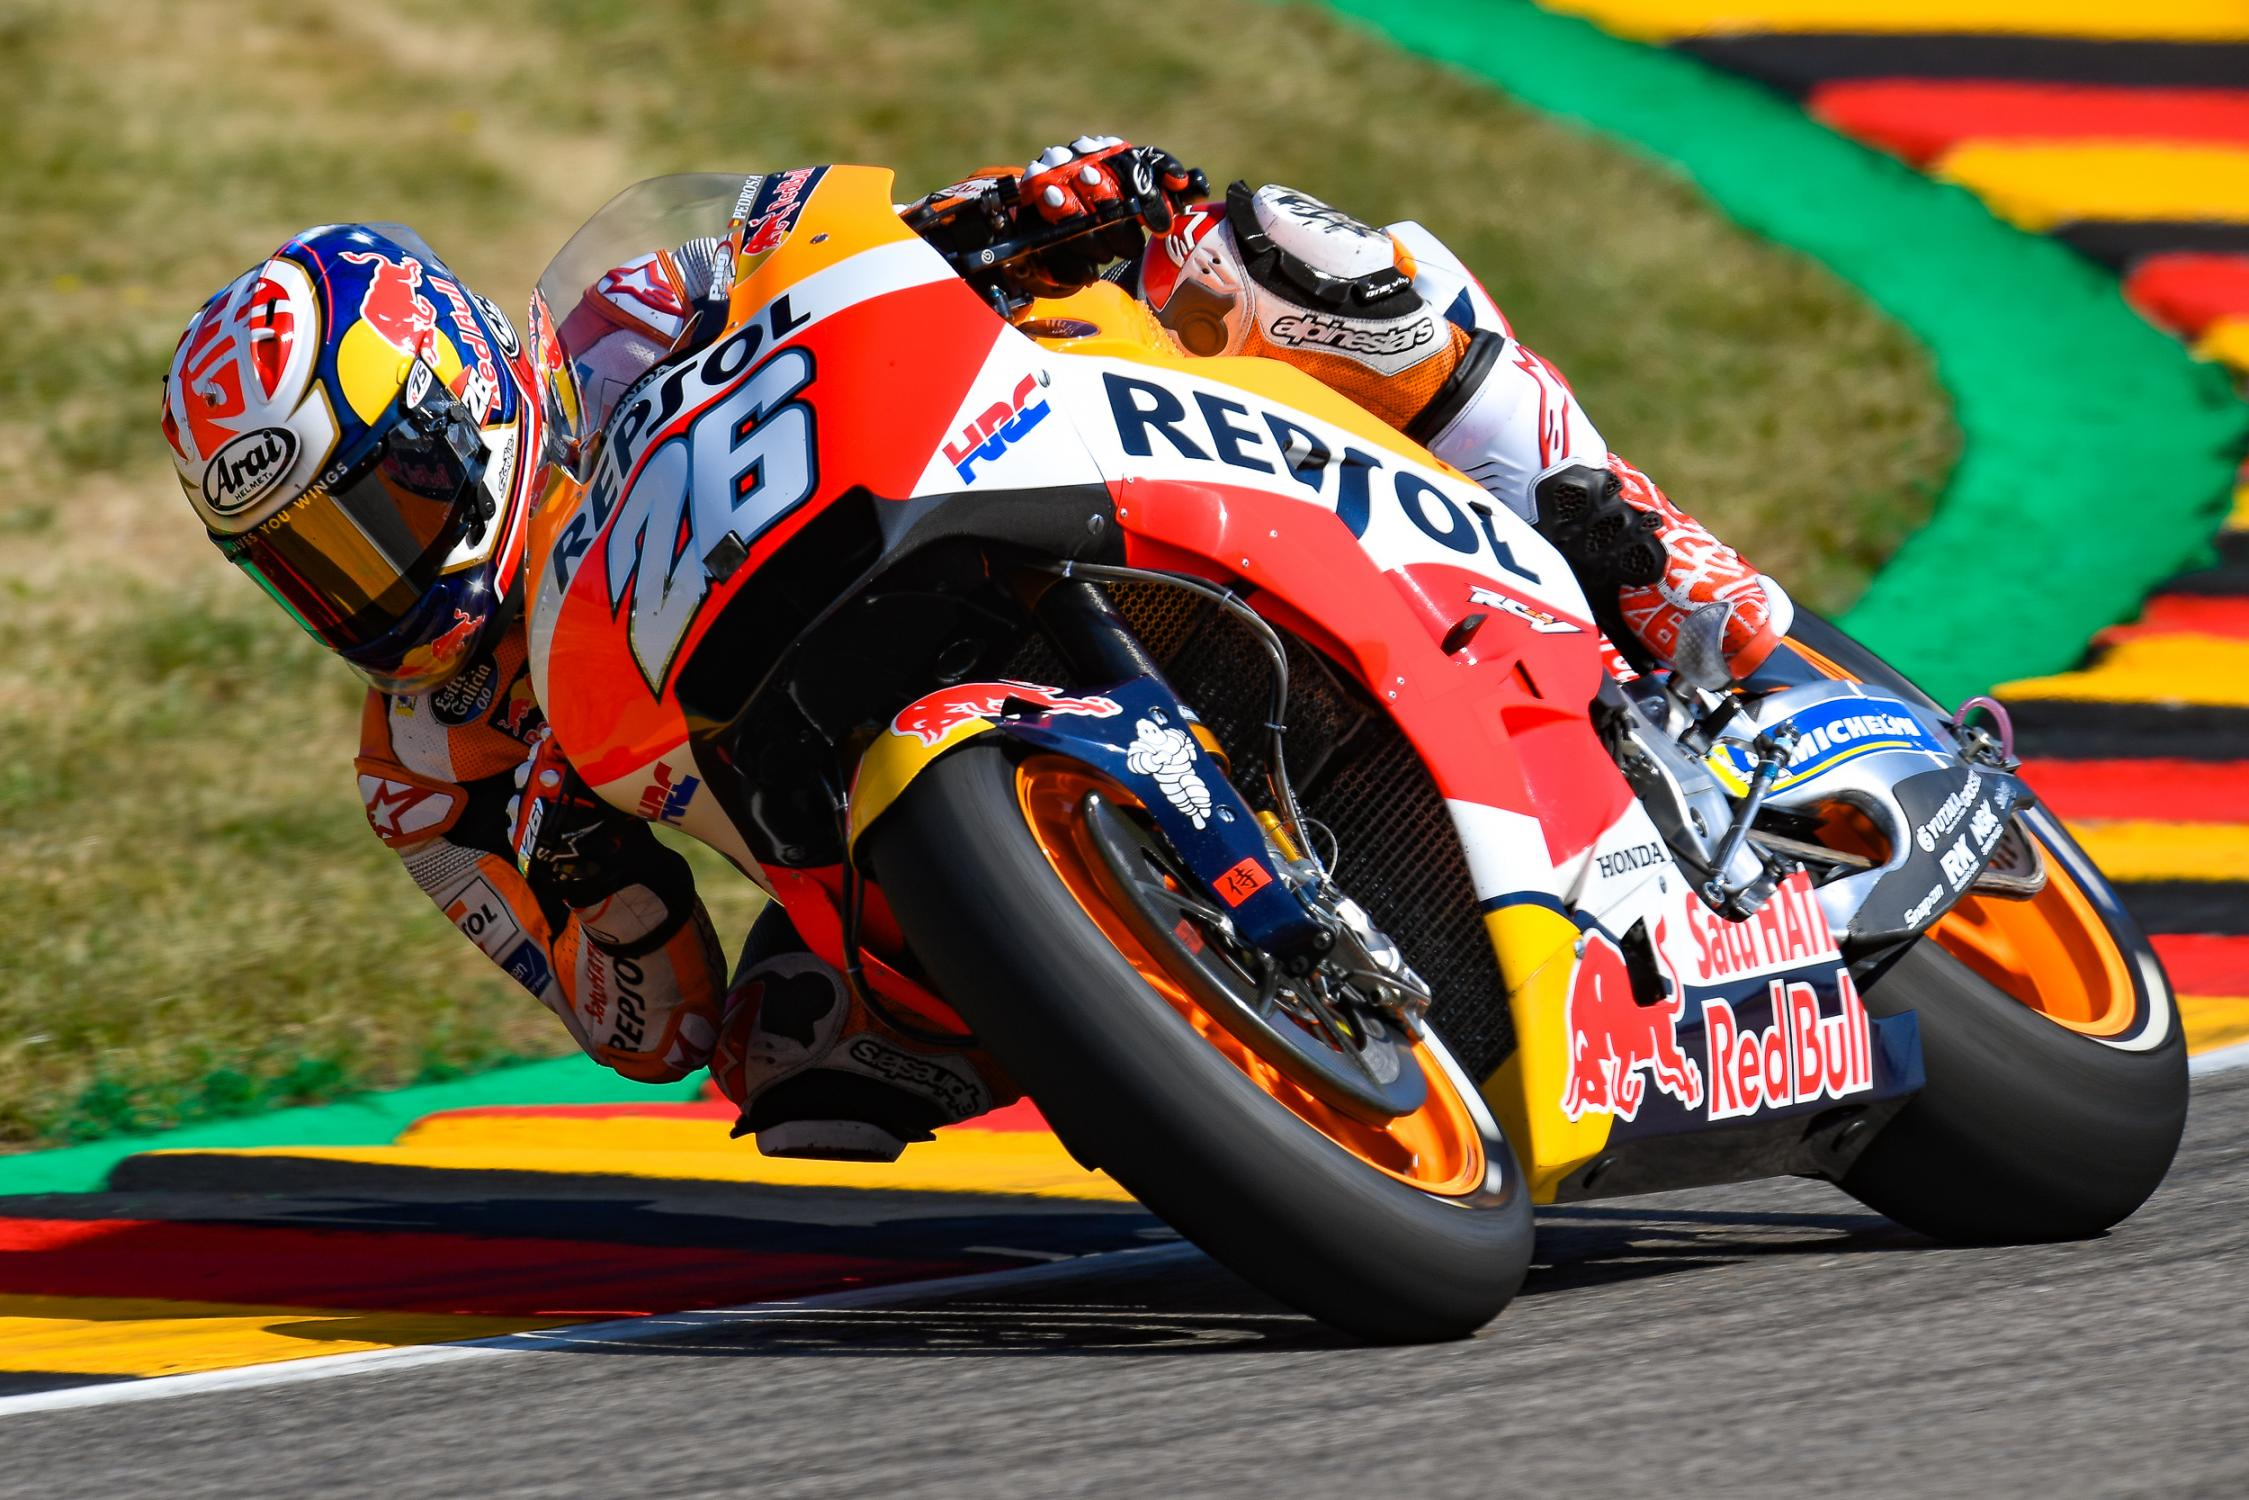 26-dani-pedrosa-esp_ds56962.gallery_full_top_fullscreen.jpg